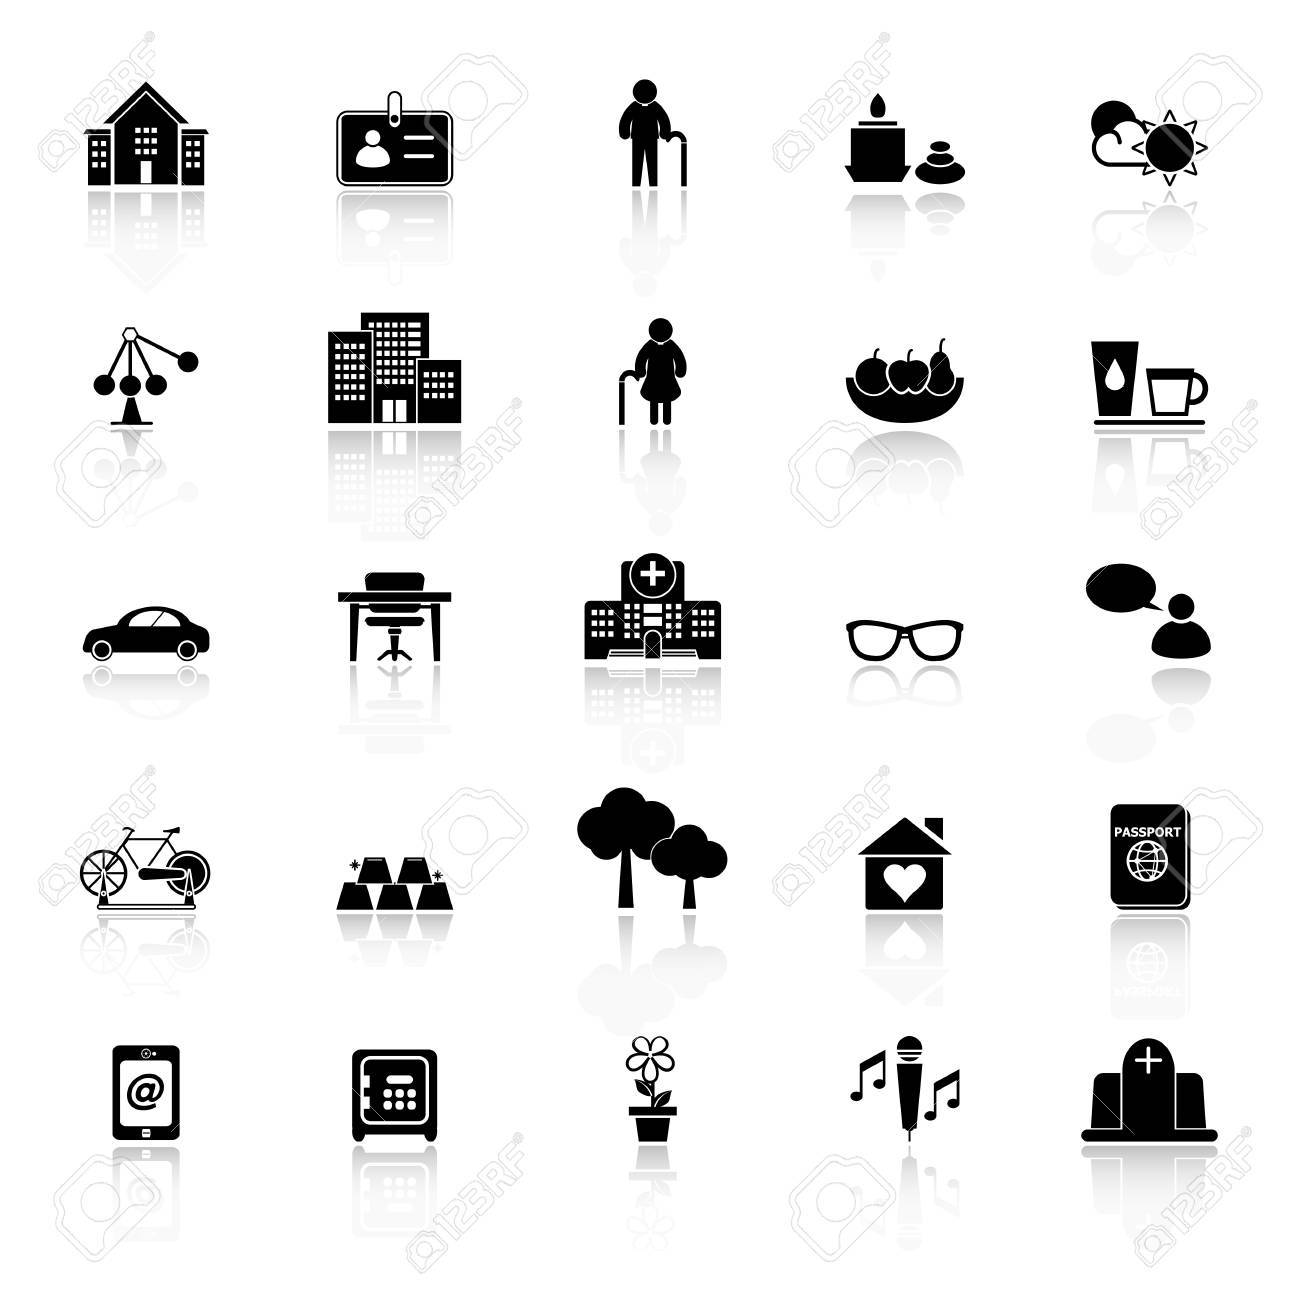 Retirement community icons with reflect on white background, stock vector Standard-Bild - 35610462